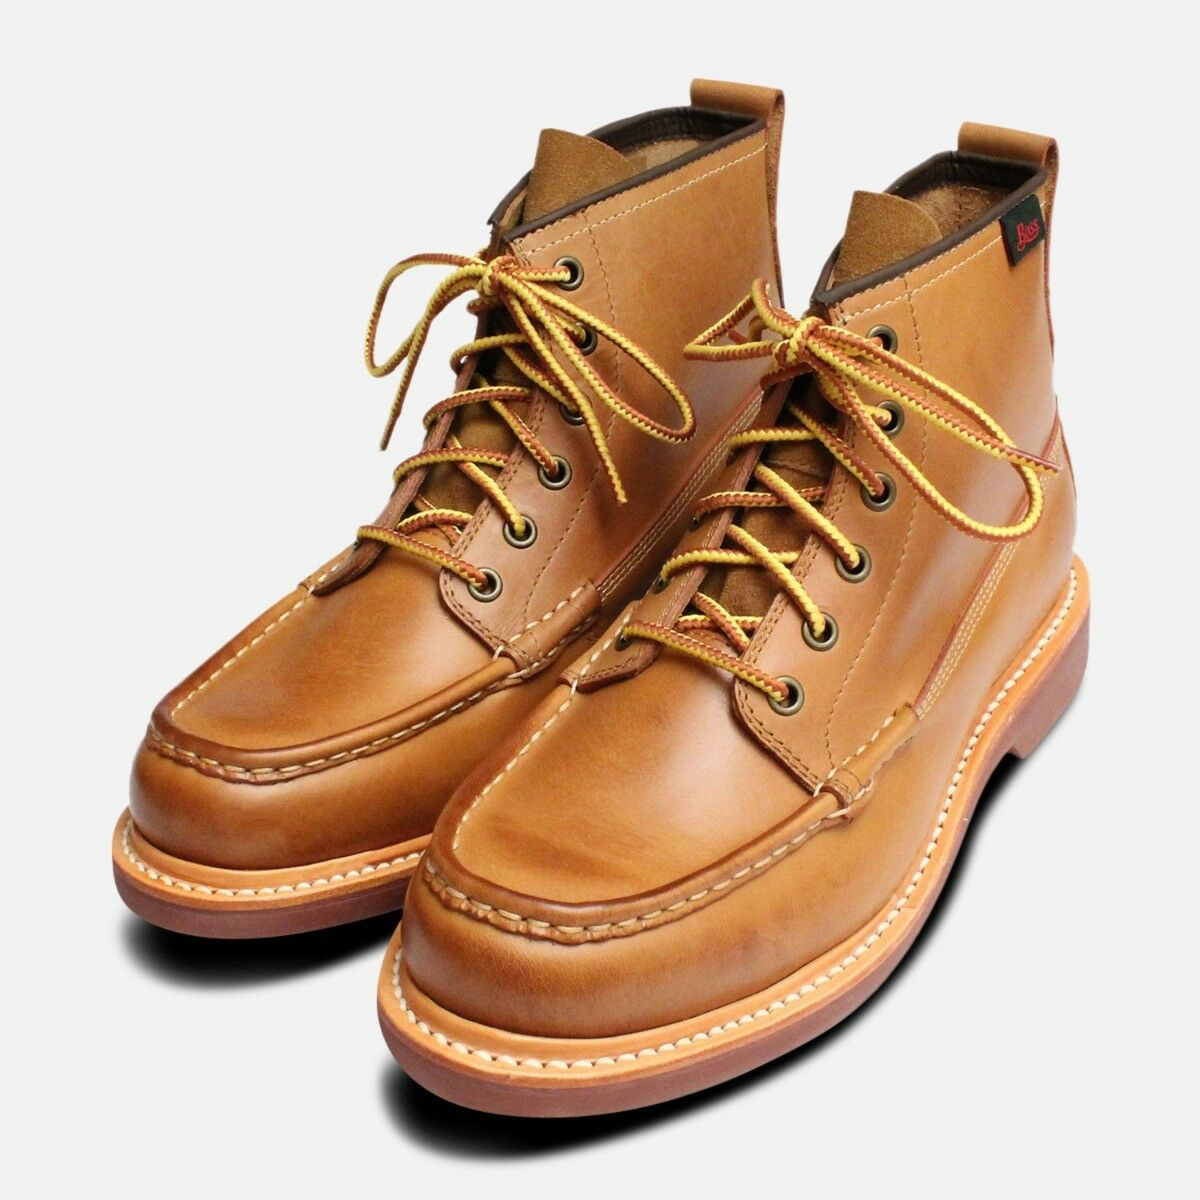 Quail Hunter Boots in Tan Leather by G H Bass